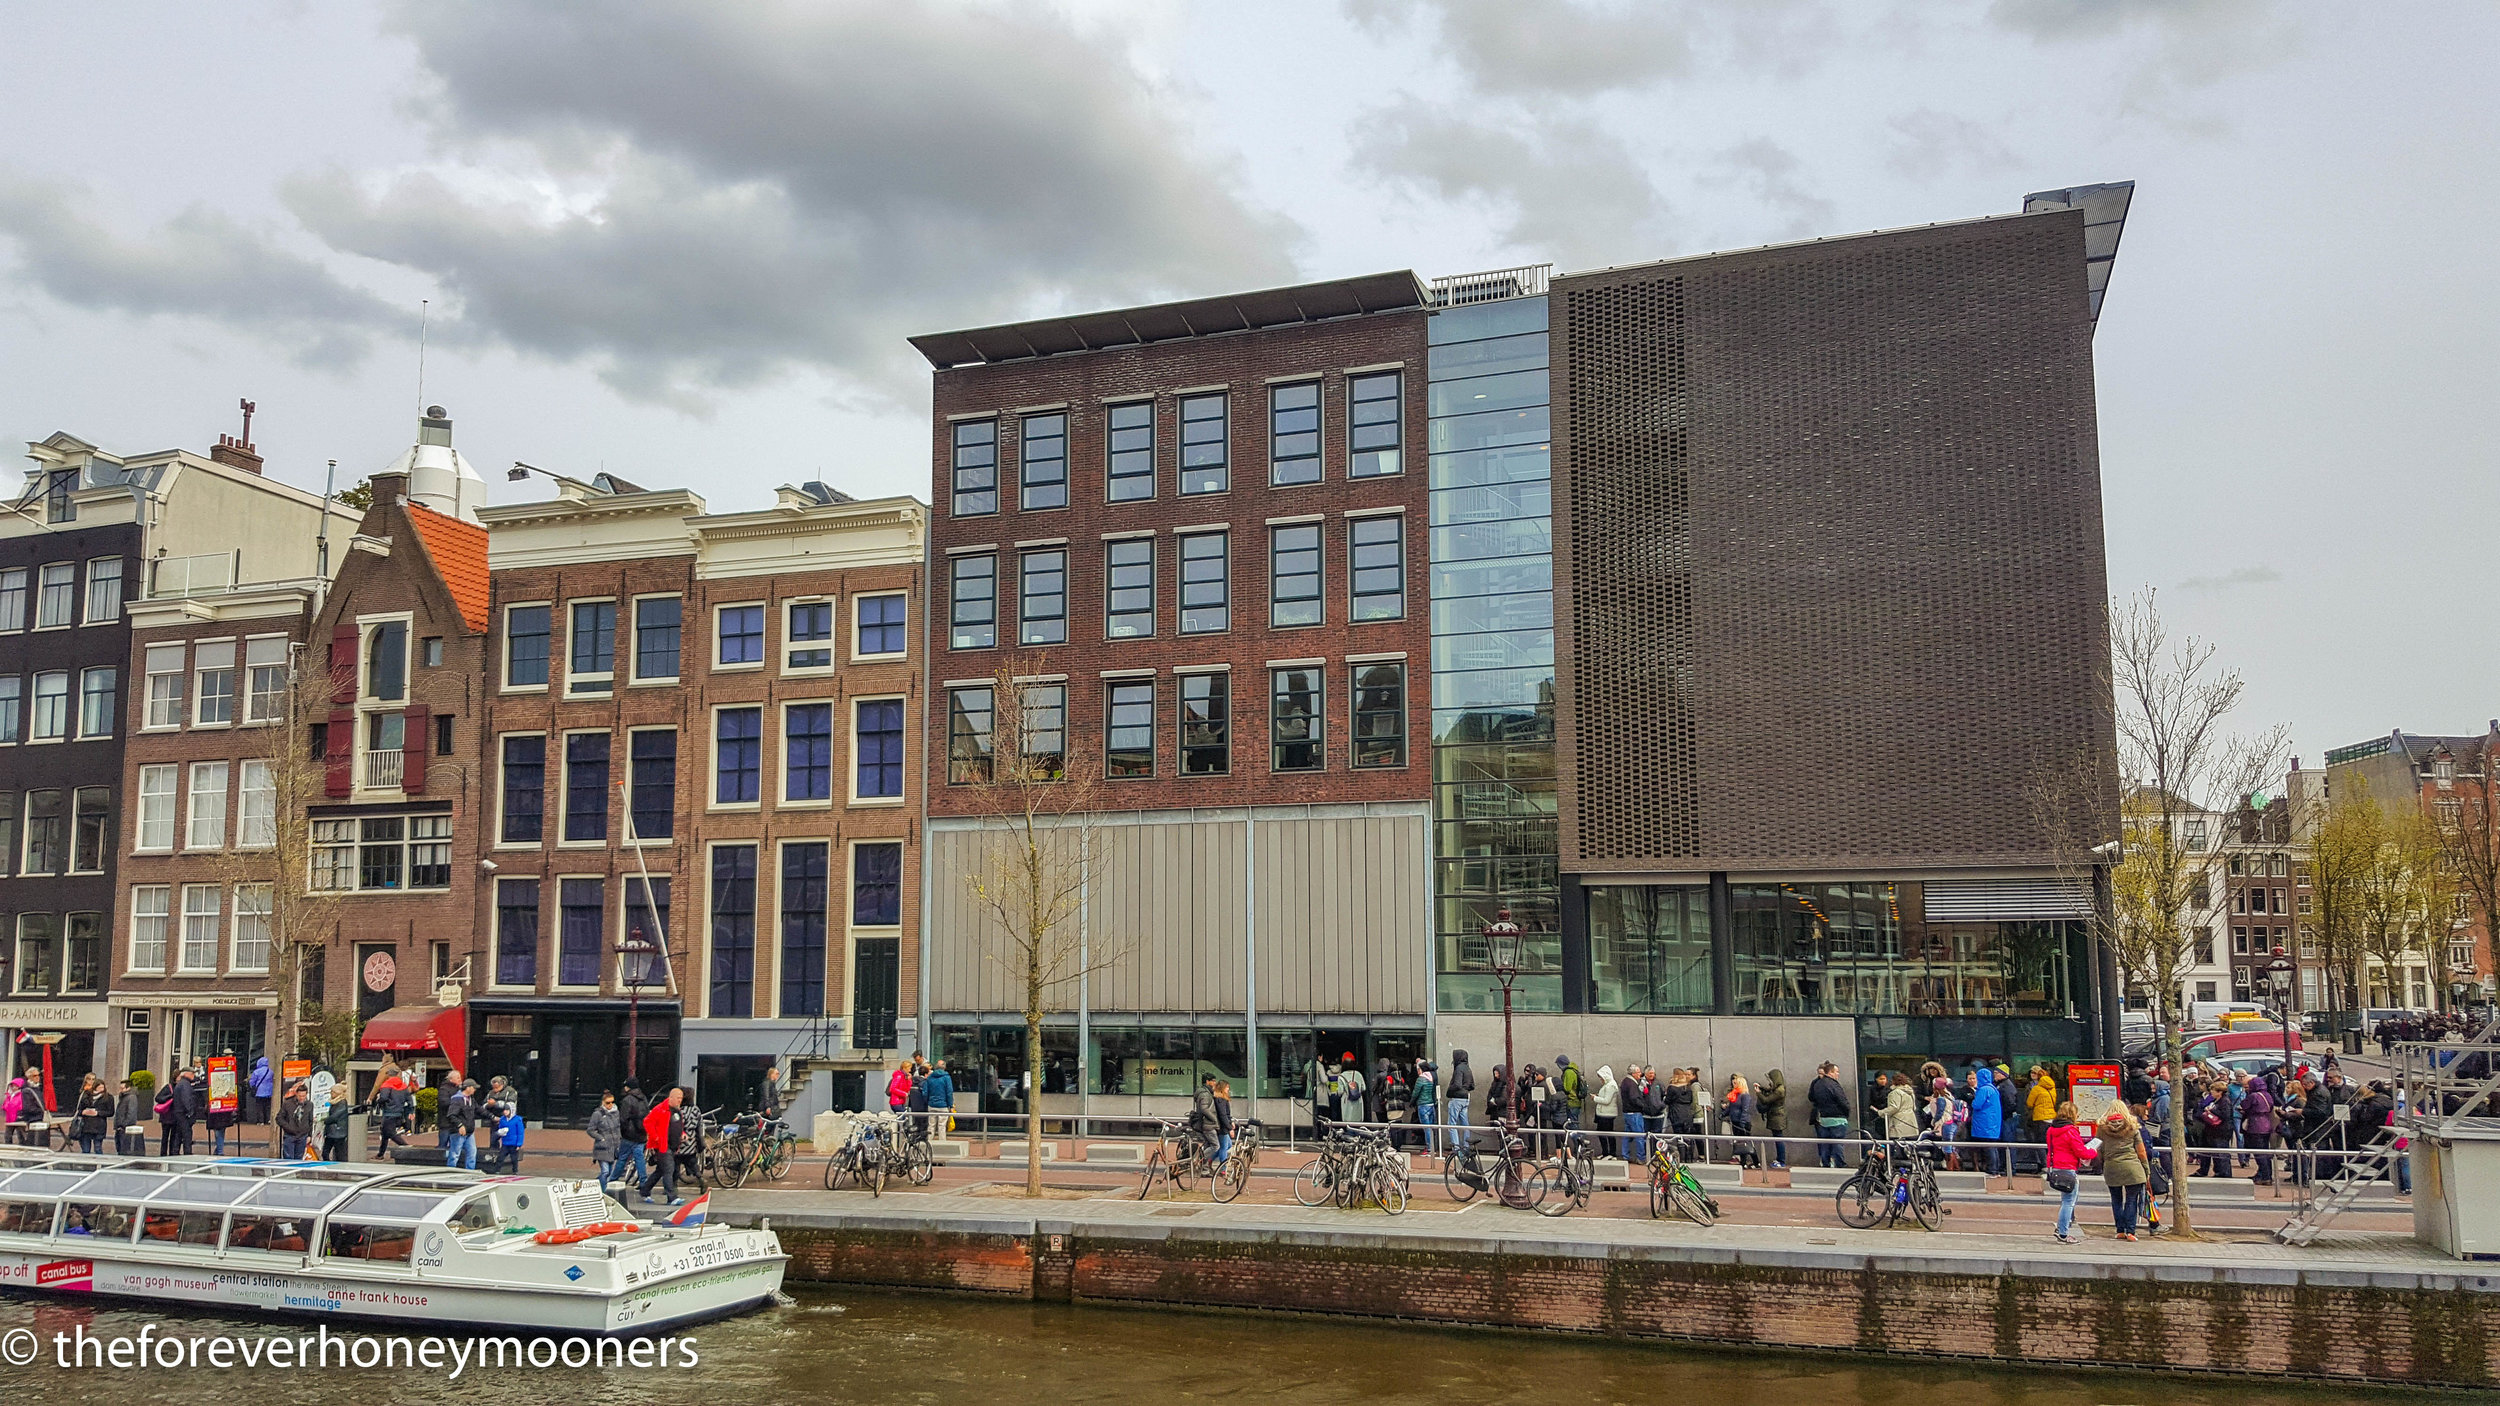 The long, long queue around the Anne Frank House